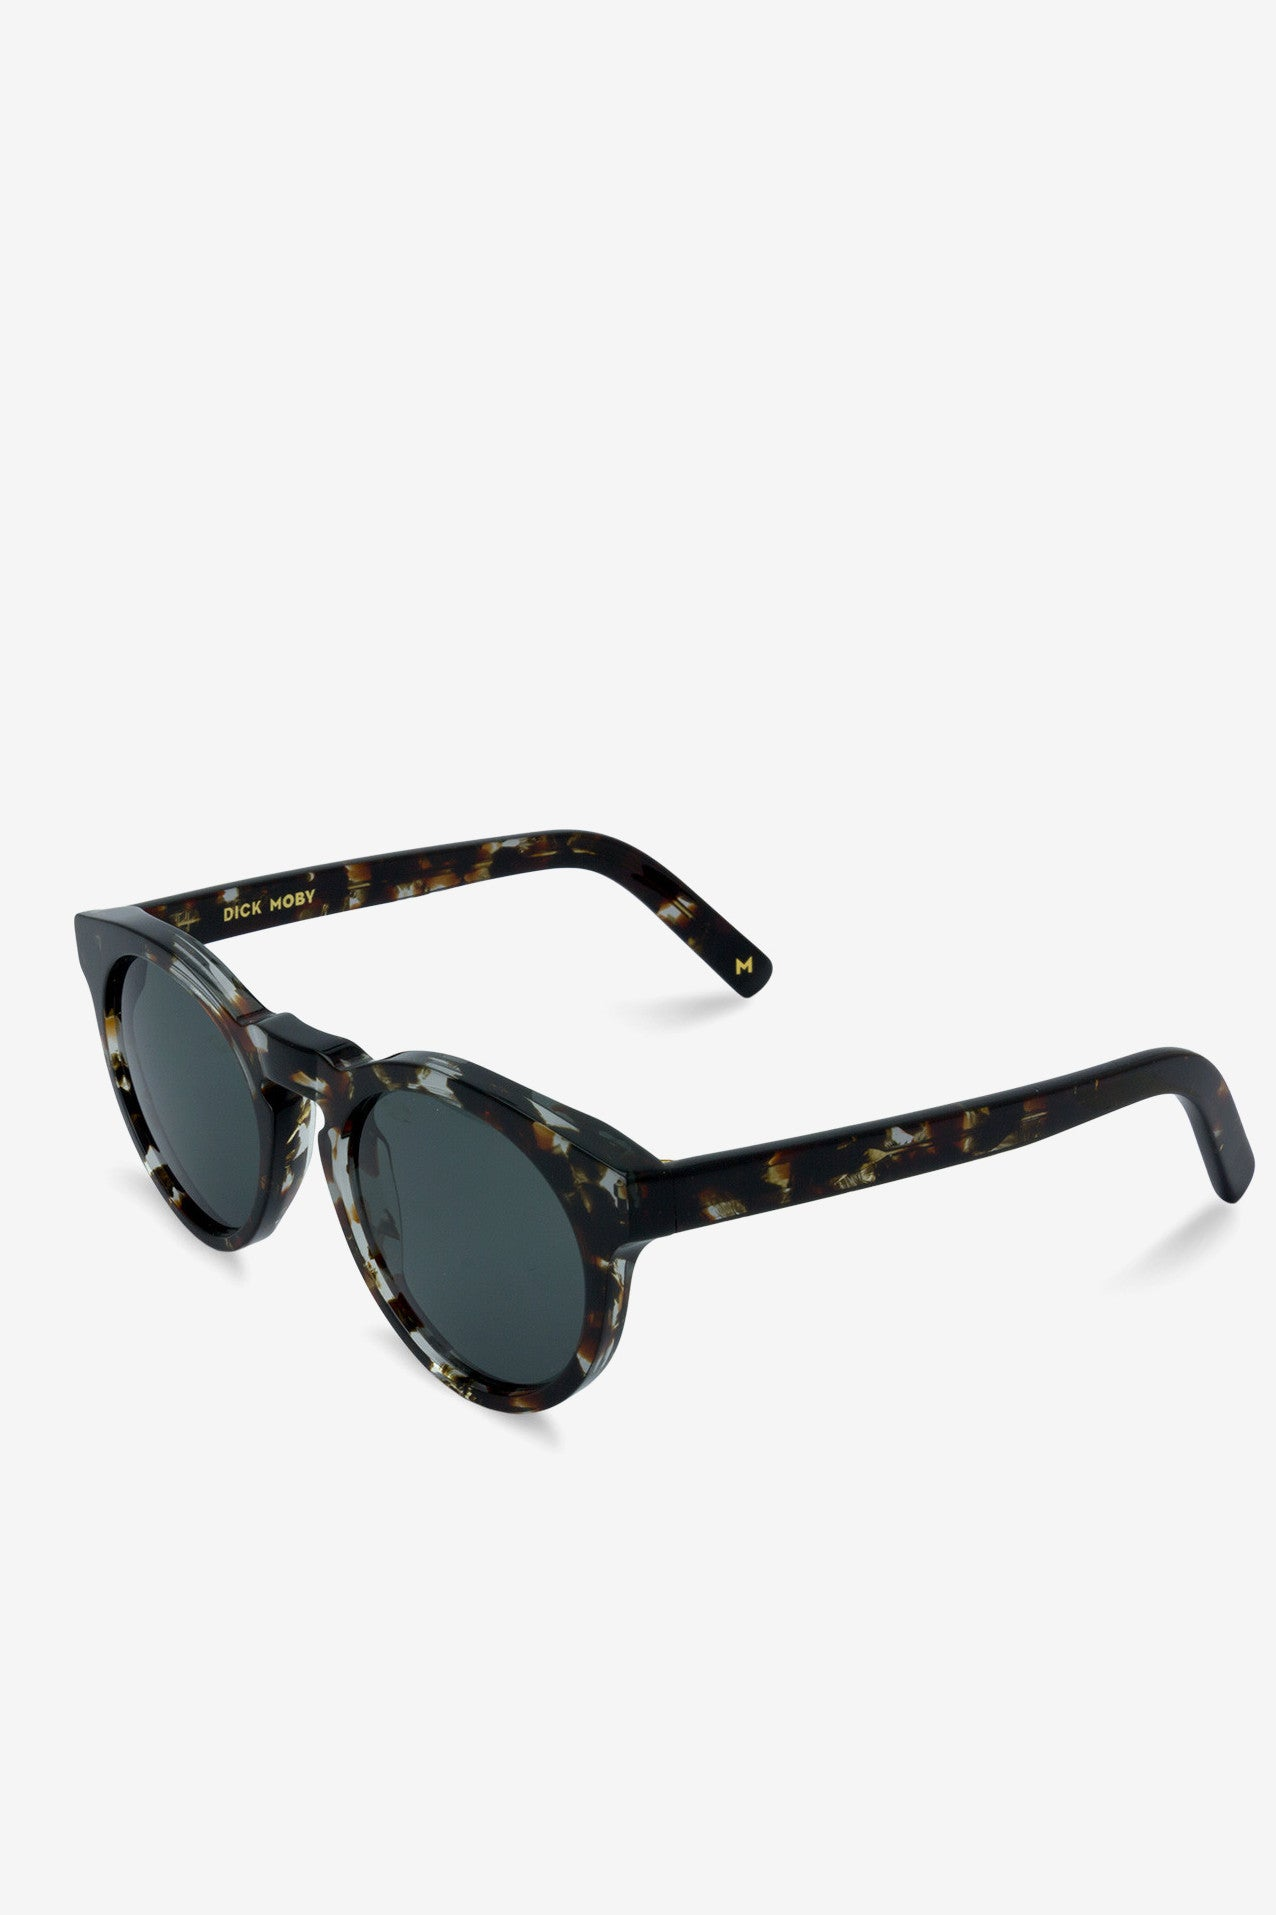 LHR Crystal Havana, Sunglasses, Dick Moby - Six and Sons